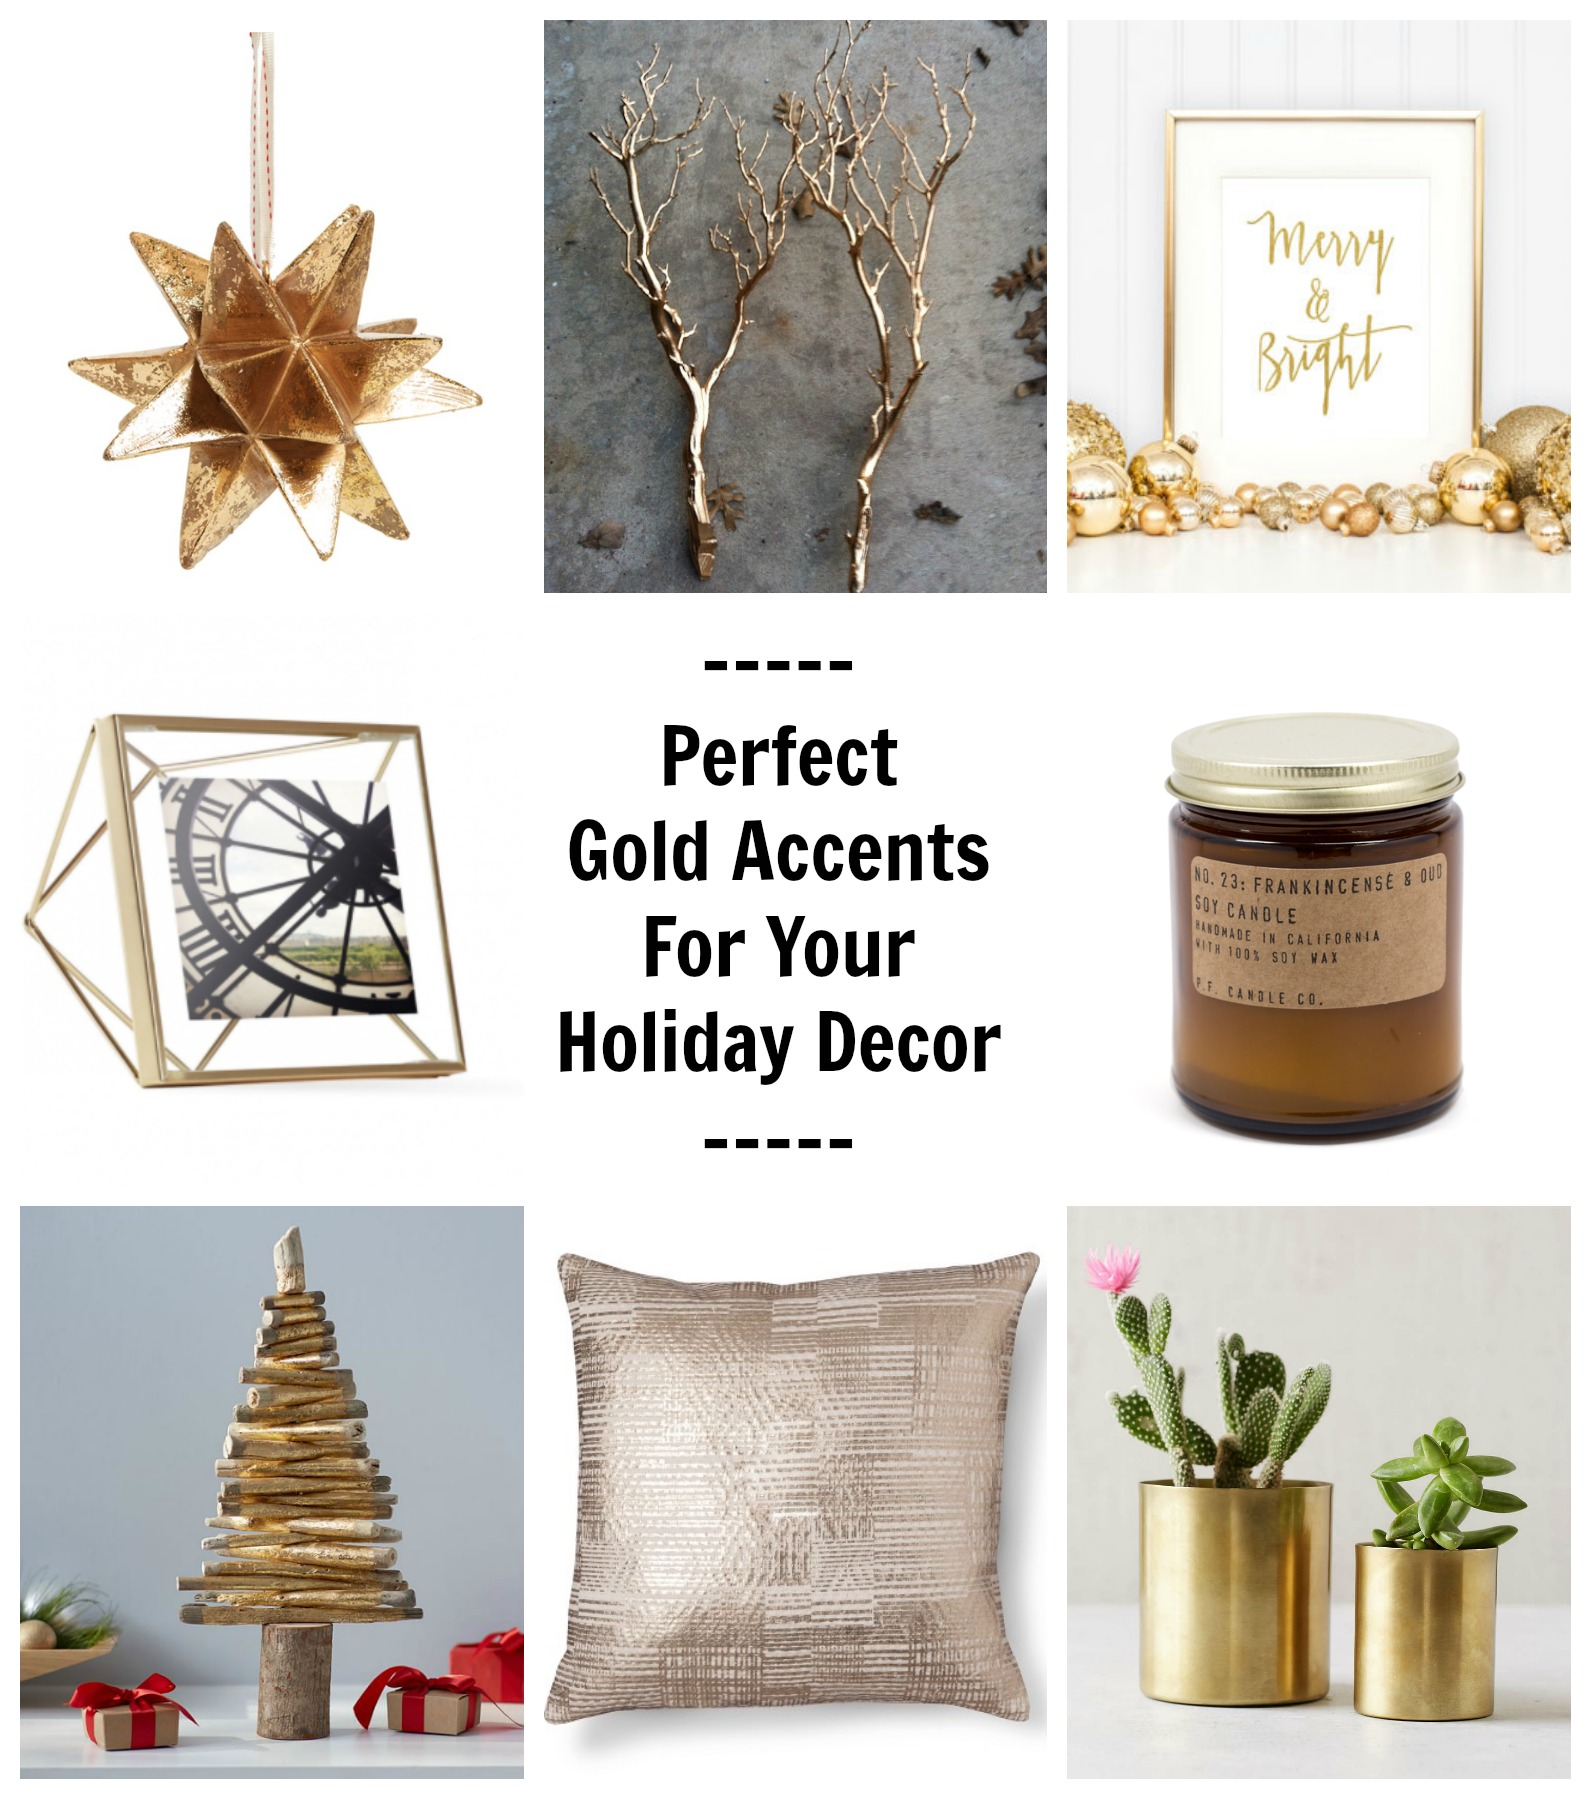 Perfect Gold Accents For Your Holiday Decor